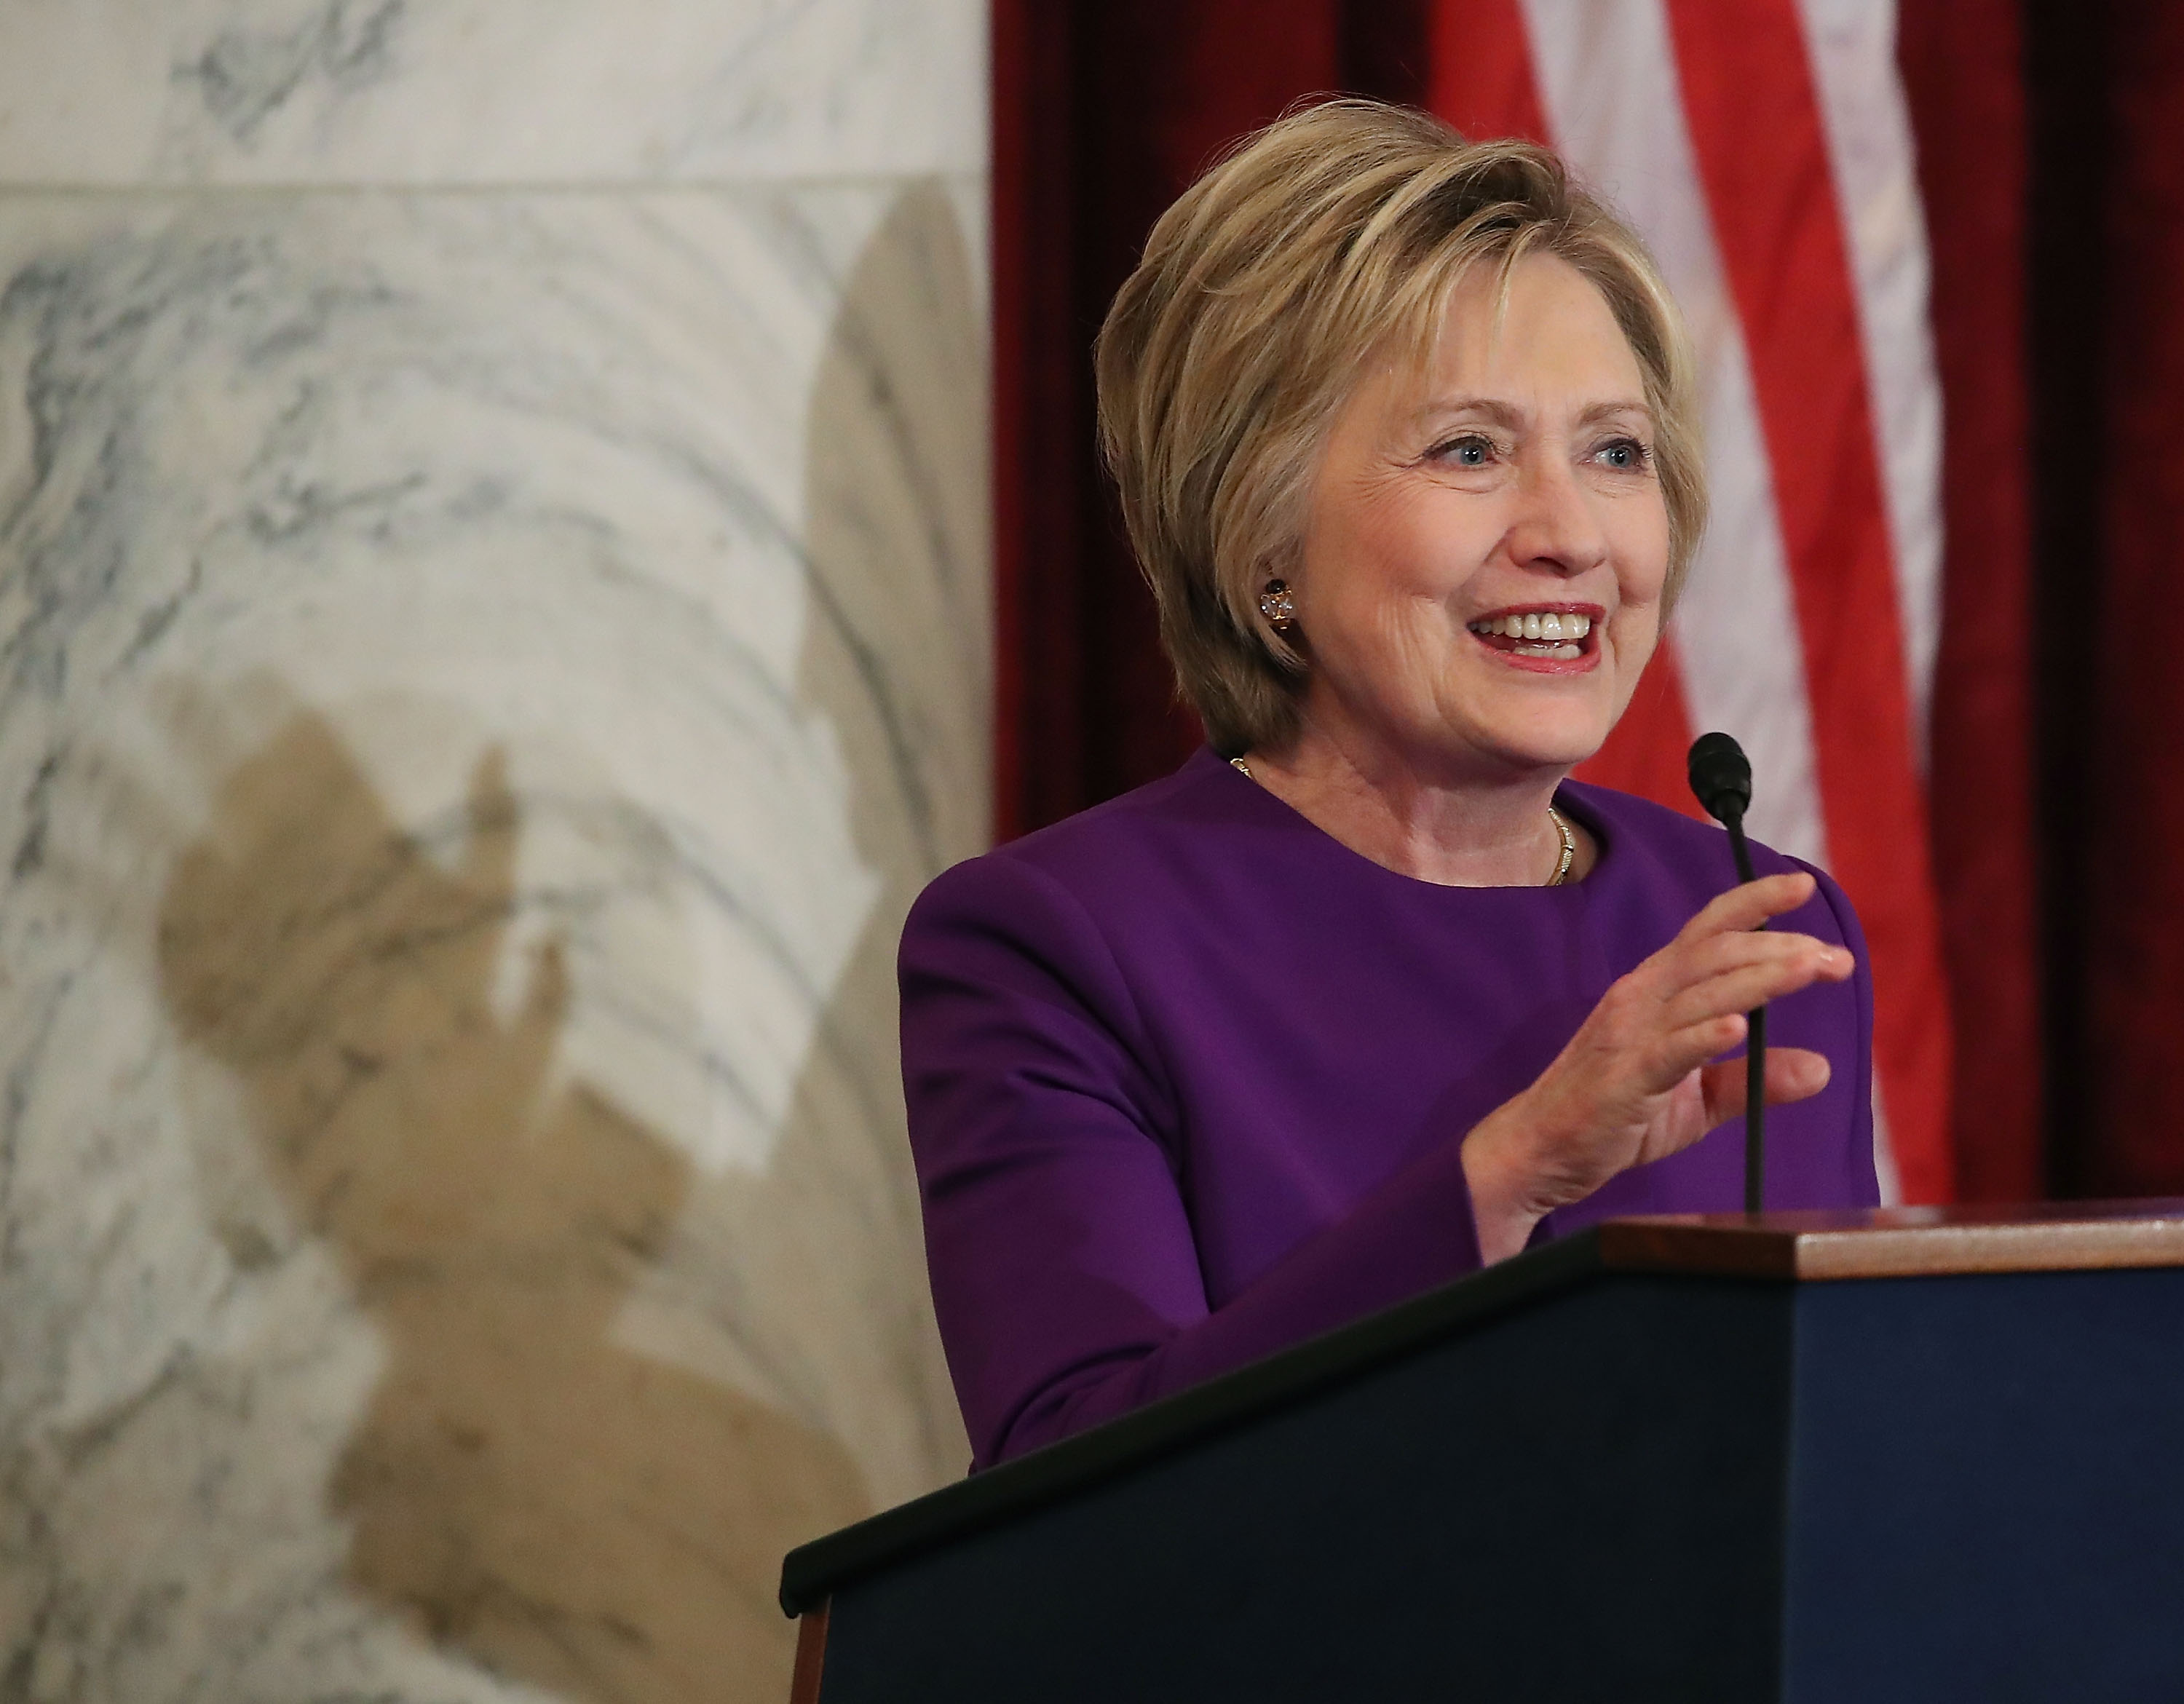 Former US Secretary of State, Hillary Clinton is applauded before speaking at a portrait unveiling ceremony for outgoing Senate Minority Leader Harry Reid (D-NV), on Capitol Hill December 8, 2016 in Washington, DC.